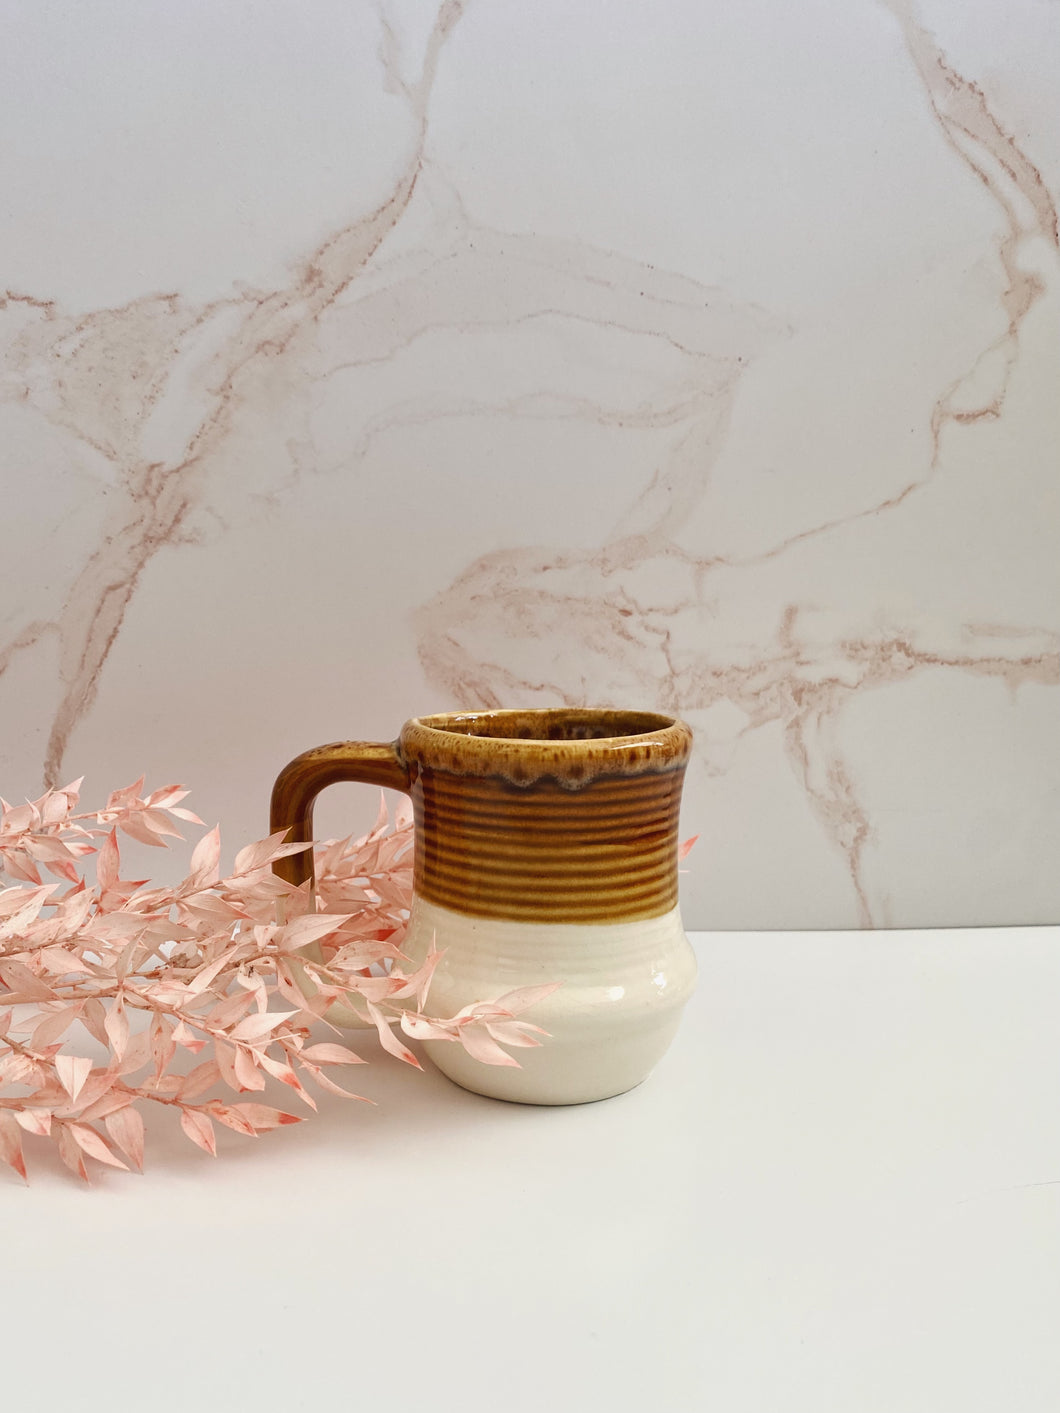 Two-Toned Beige and White Mug